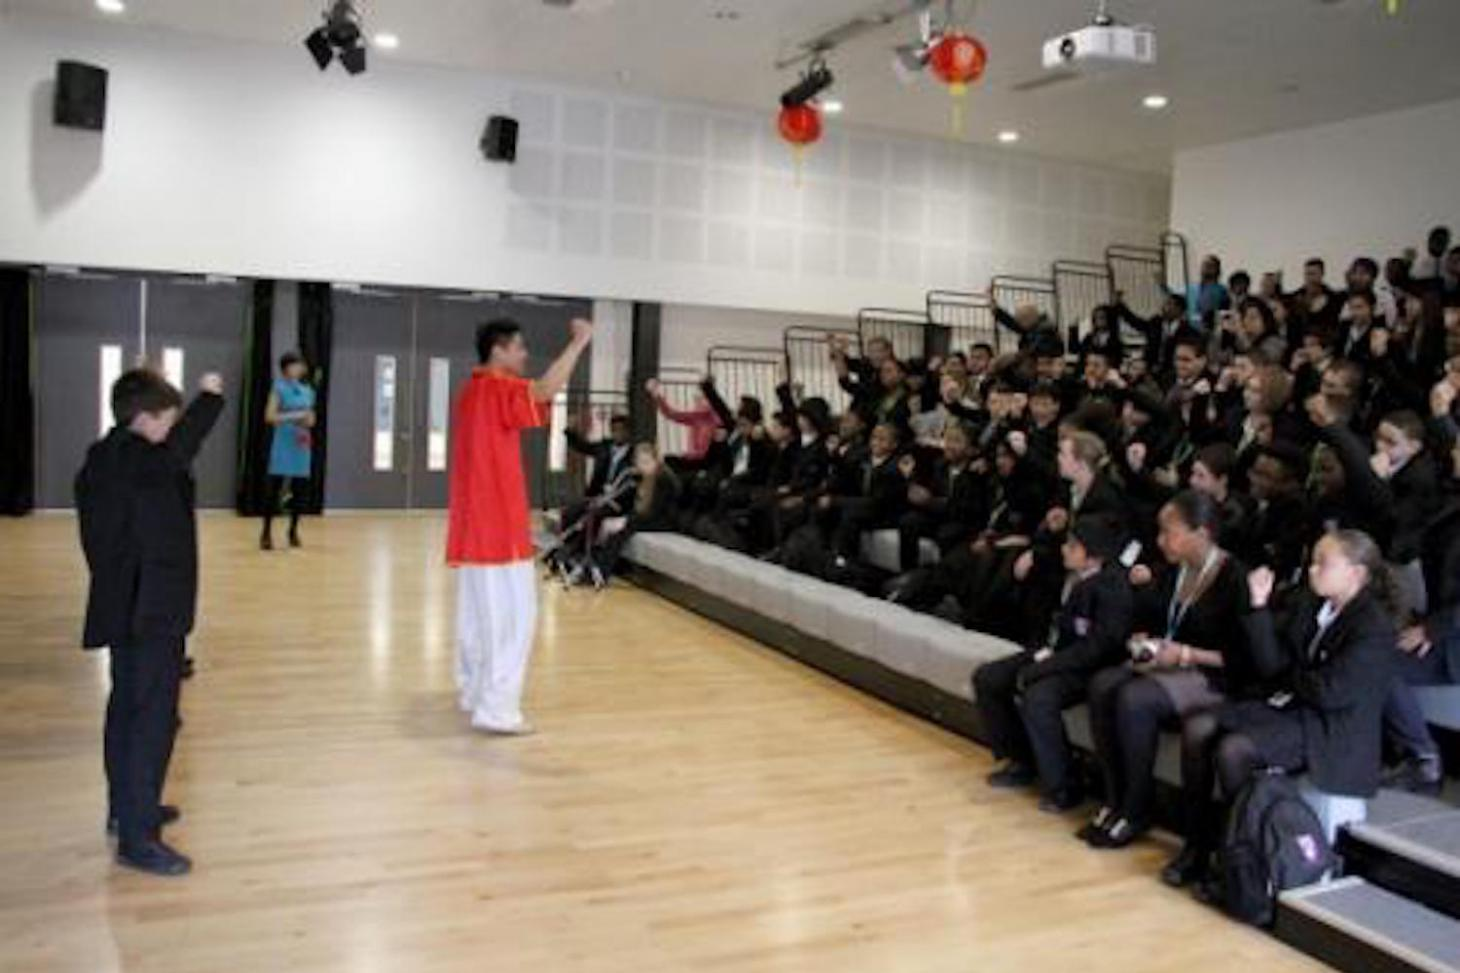 The audience learning the Chinese martial arts greeting